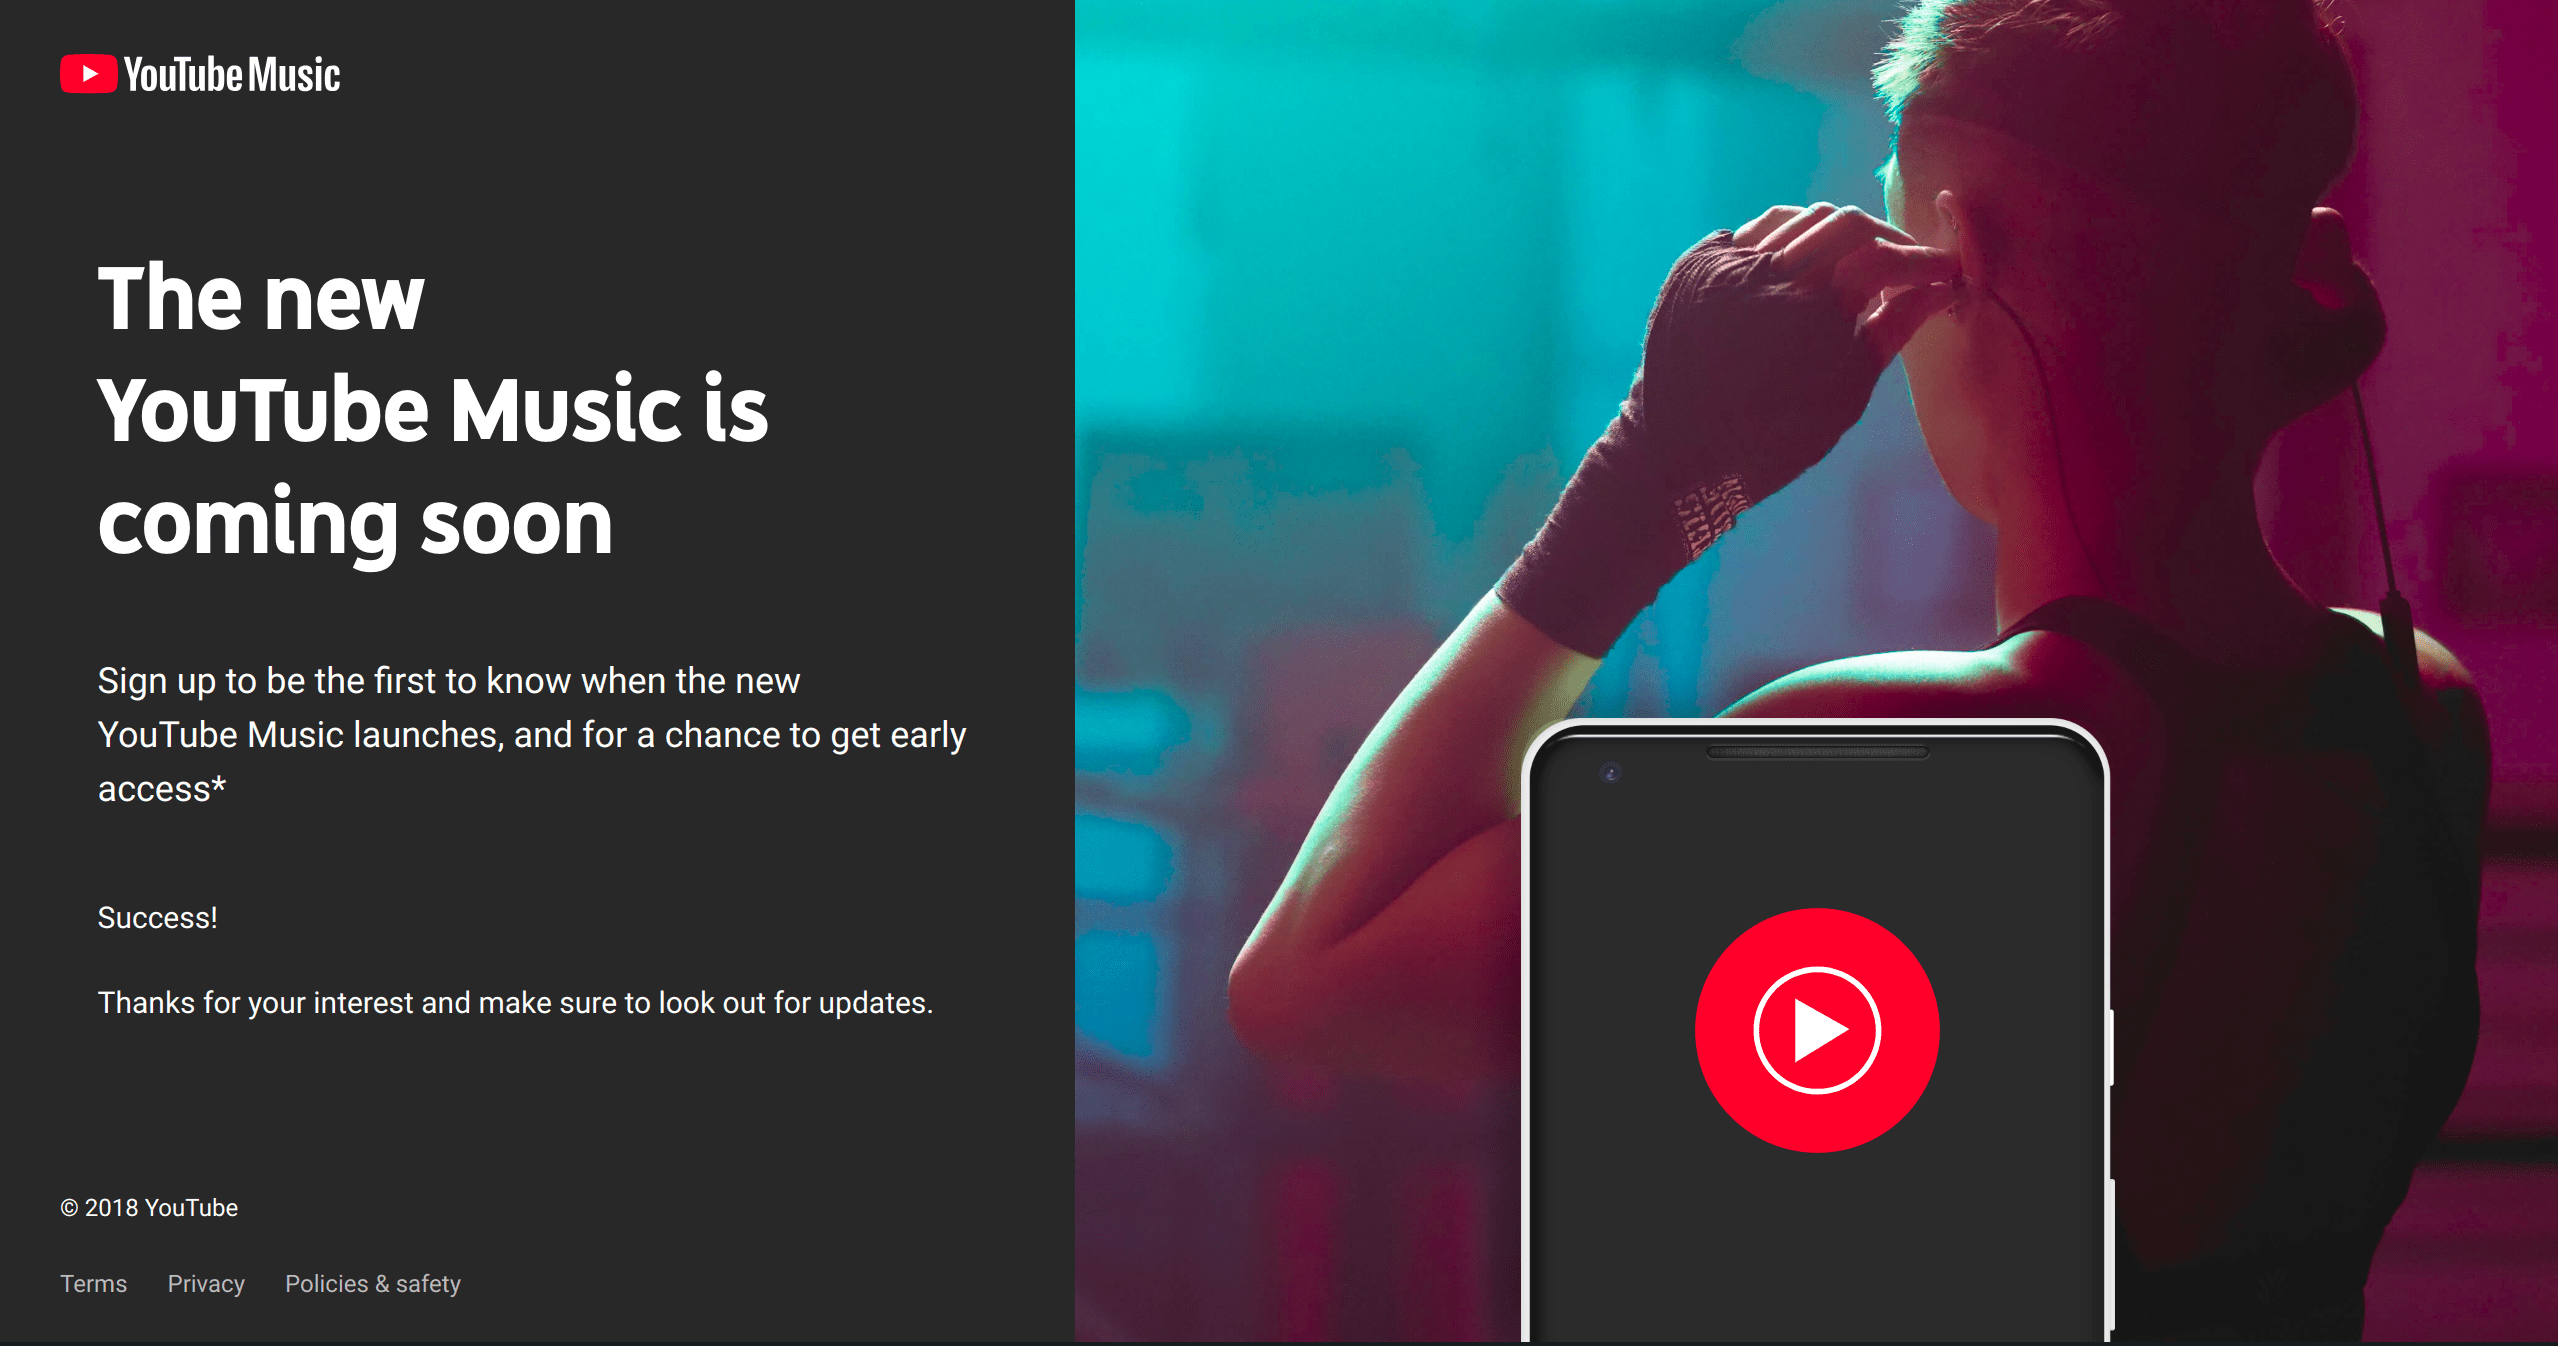 YouTube Music will let users upload their own musc